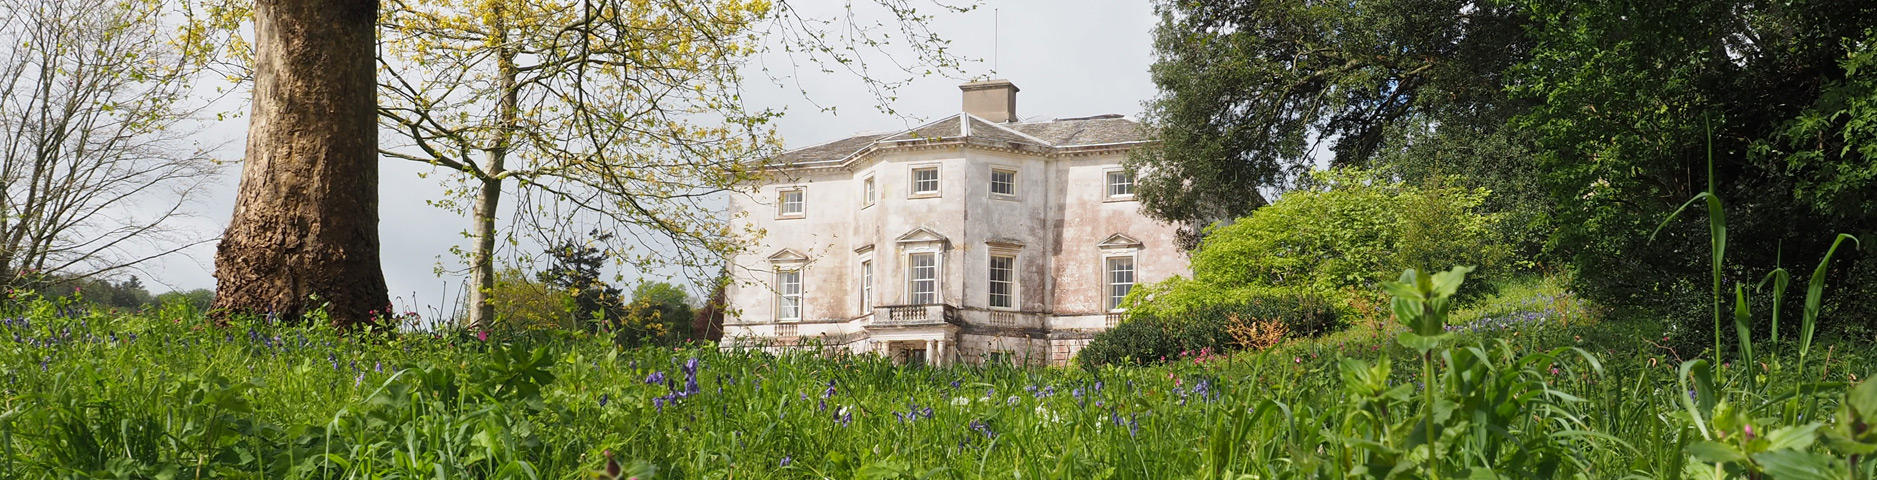 Sharpham House, home for mindfulness, arts and outdoor learning